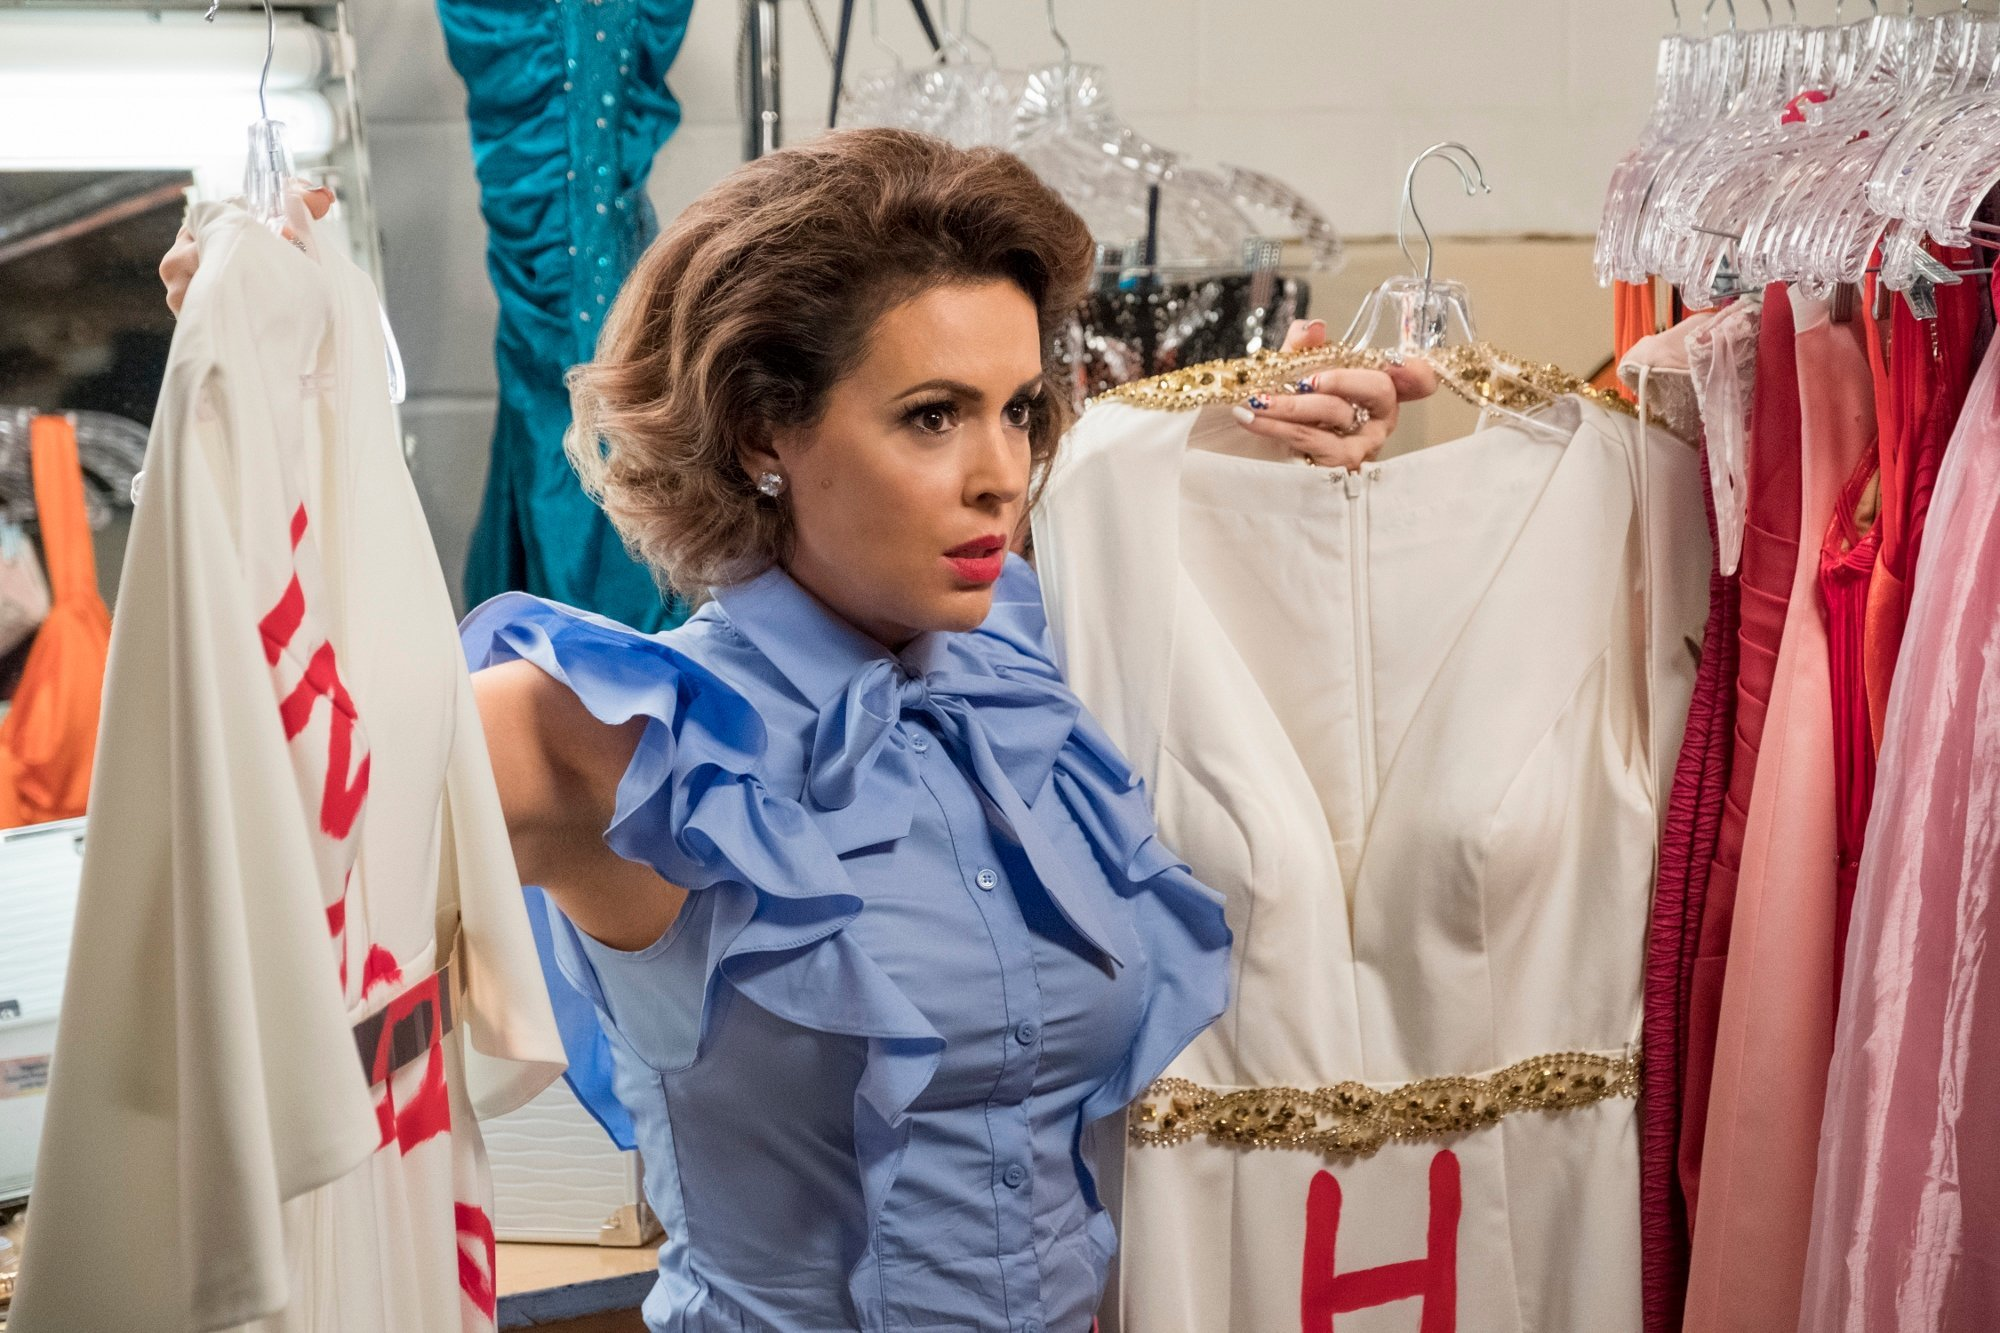 13b 2 20 Things You Probably Didn't Know About Alyssa Milano